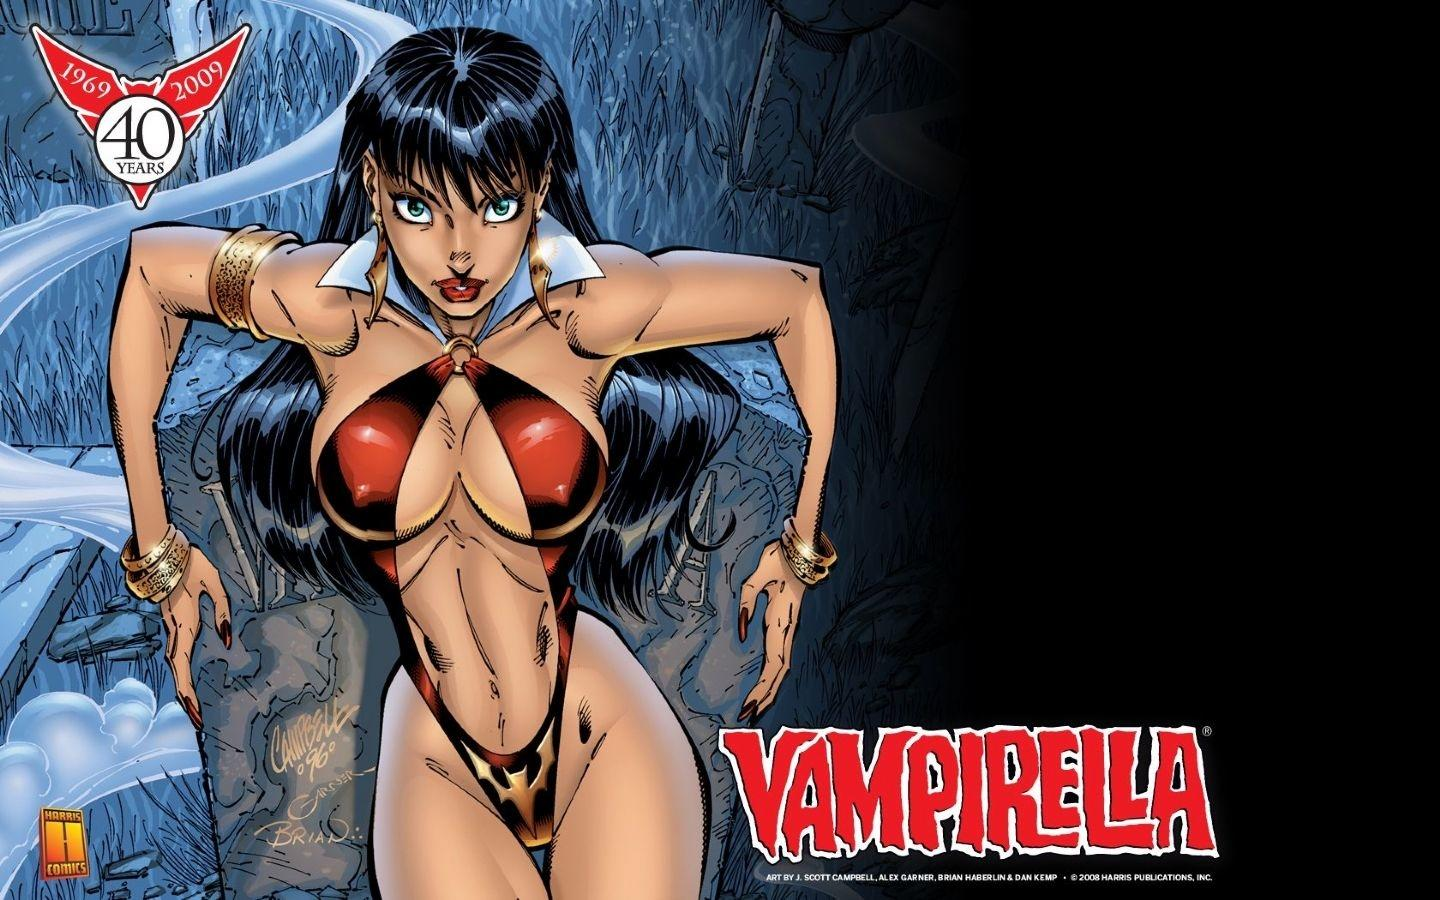 Vampirella Comics wallpapers HD quality